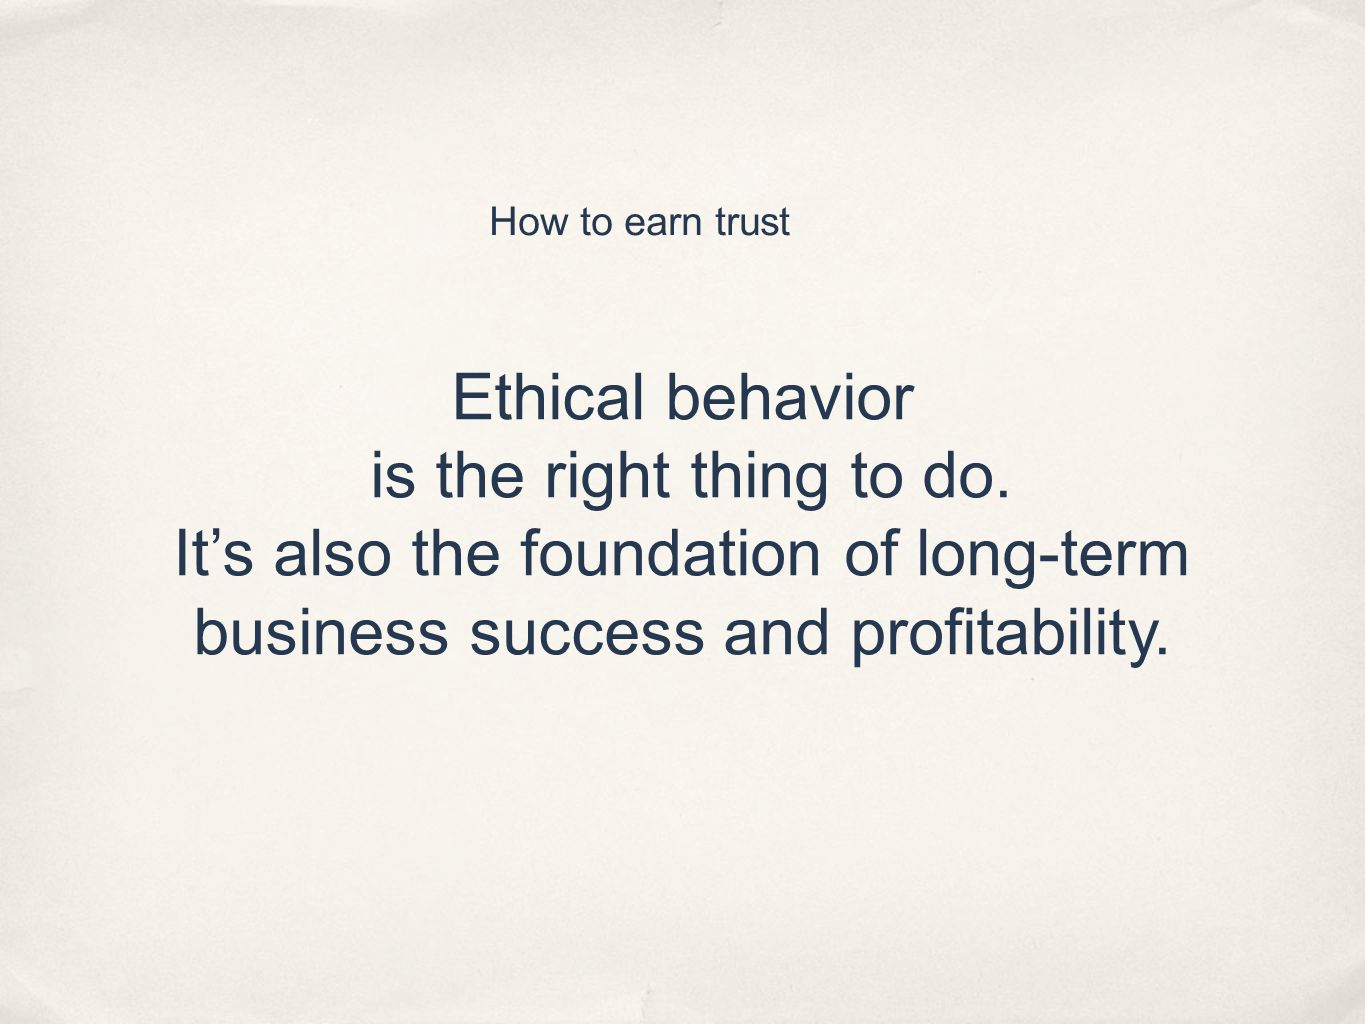 Ethical behavior is the right thing to do.